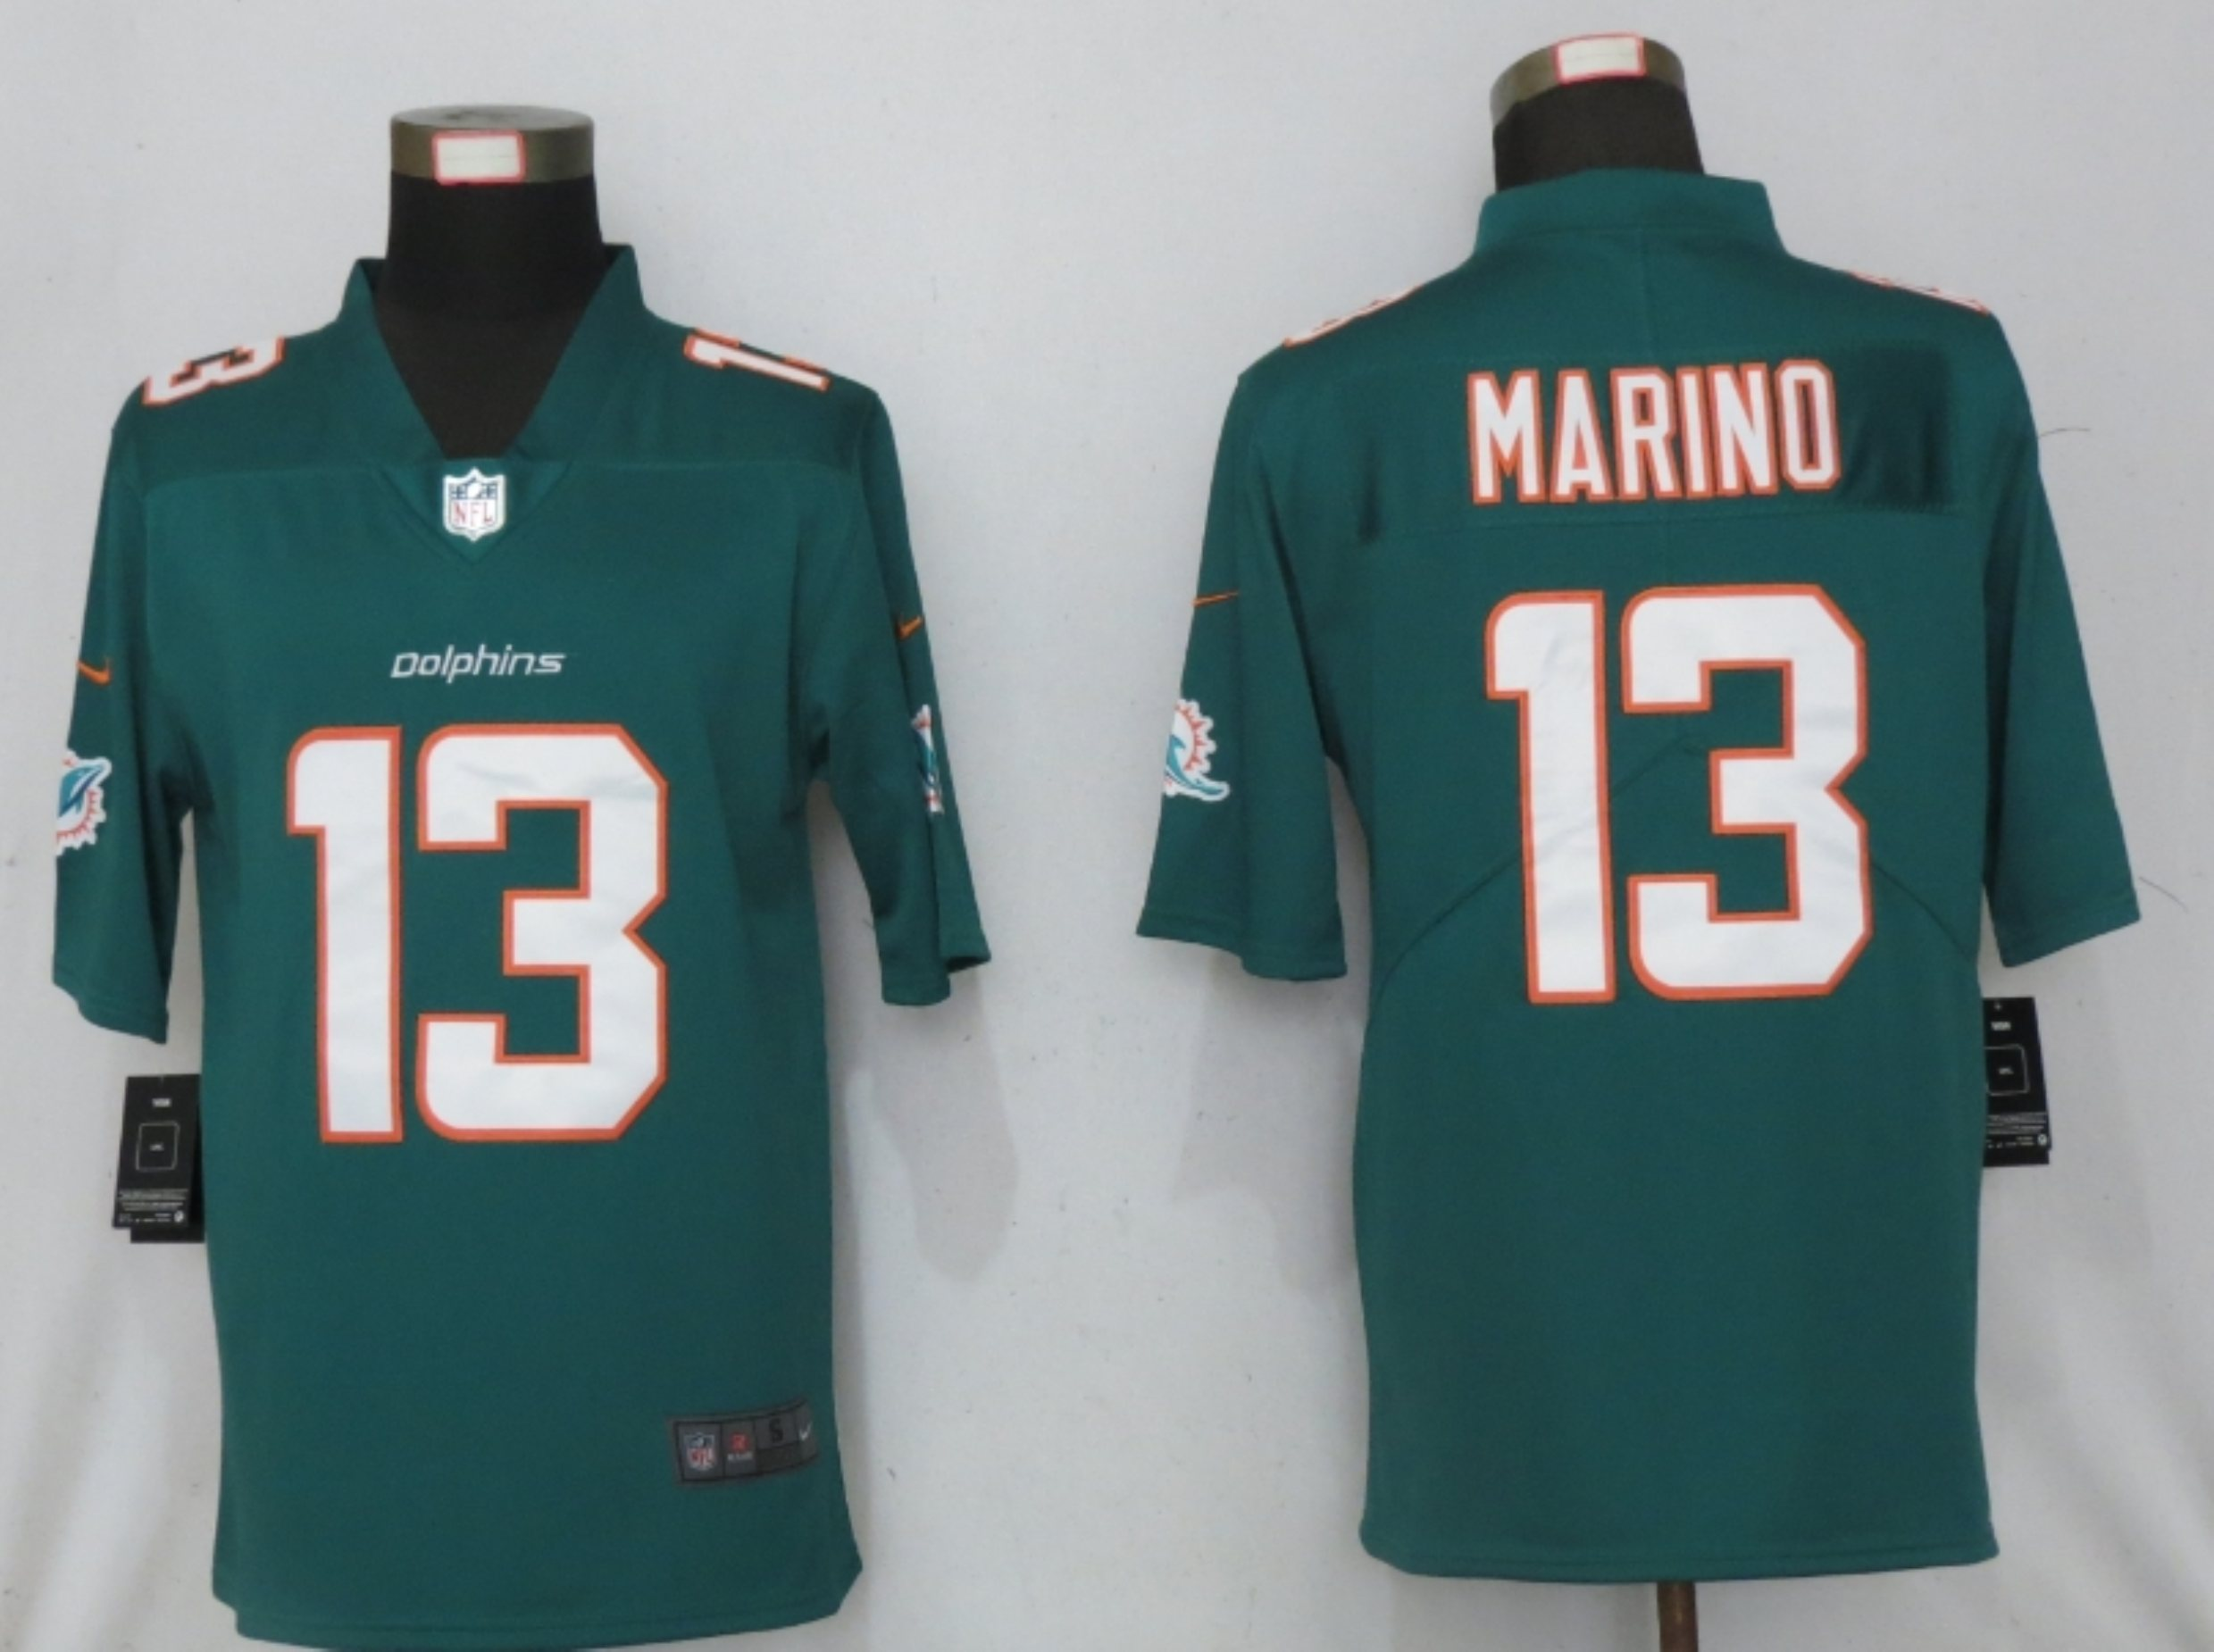 Men New Nike Miami Dolphins 13 Marino Green 2020 Vapor Limited Jersey